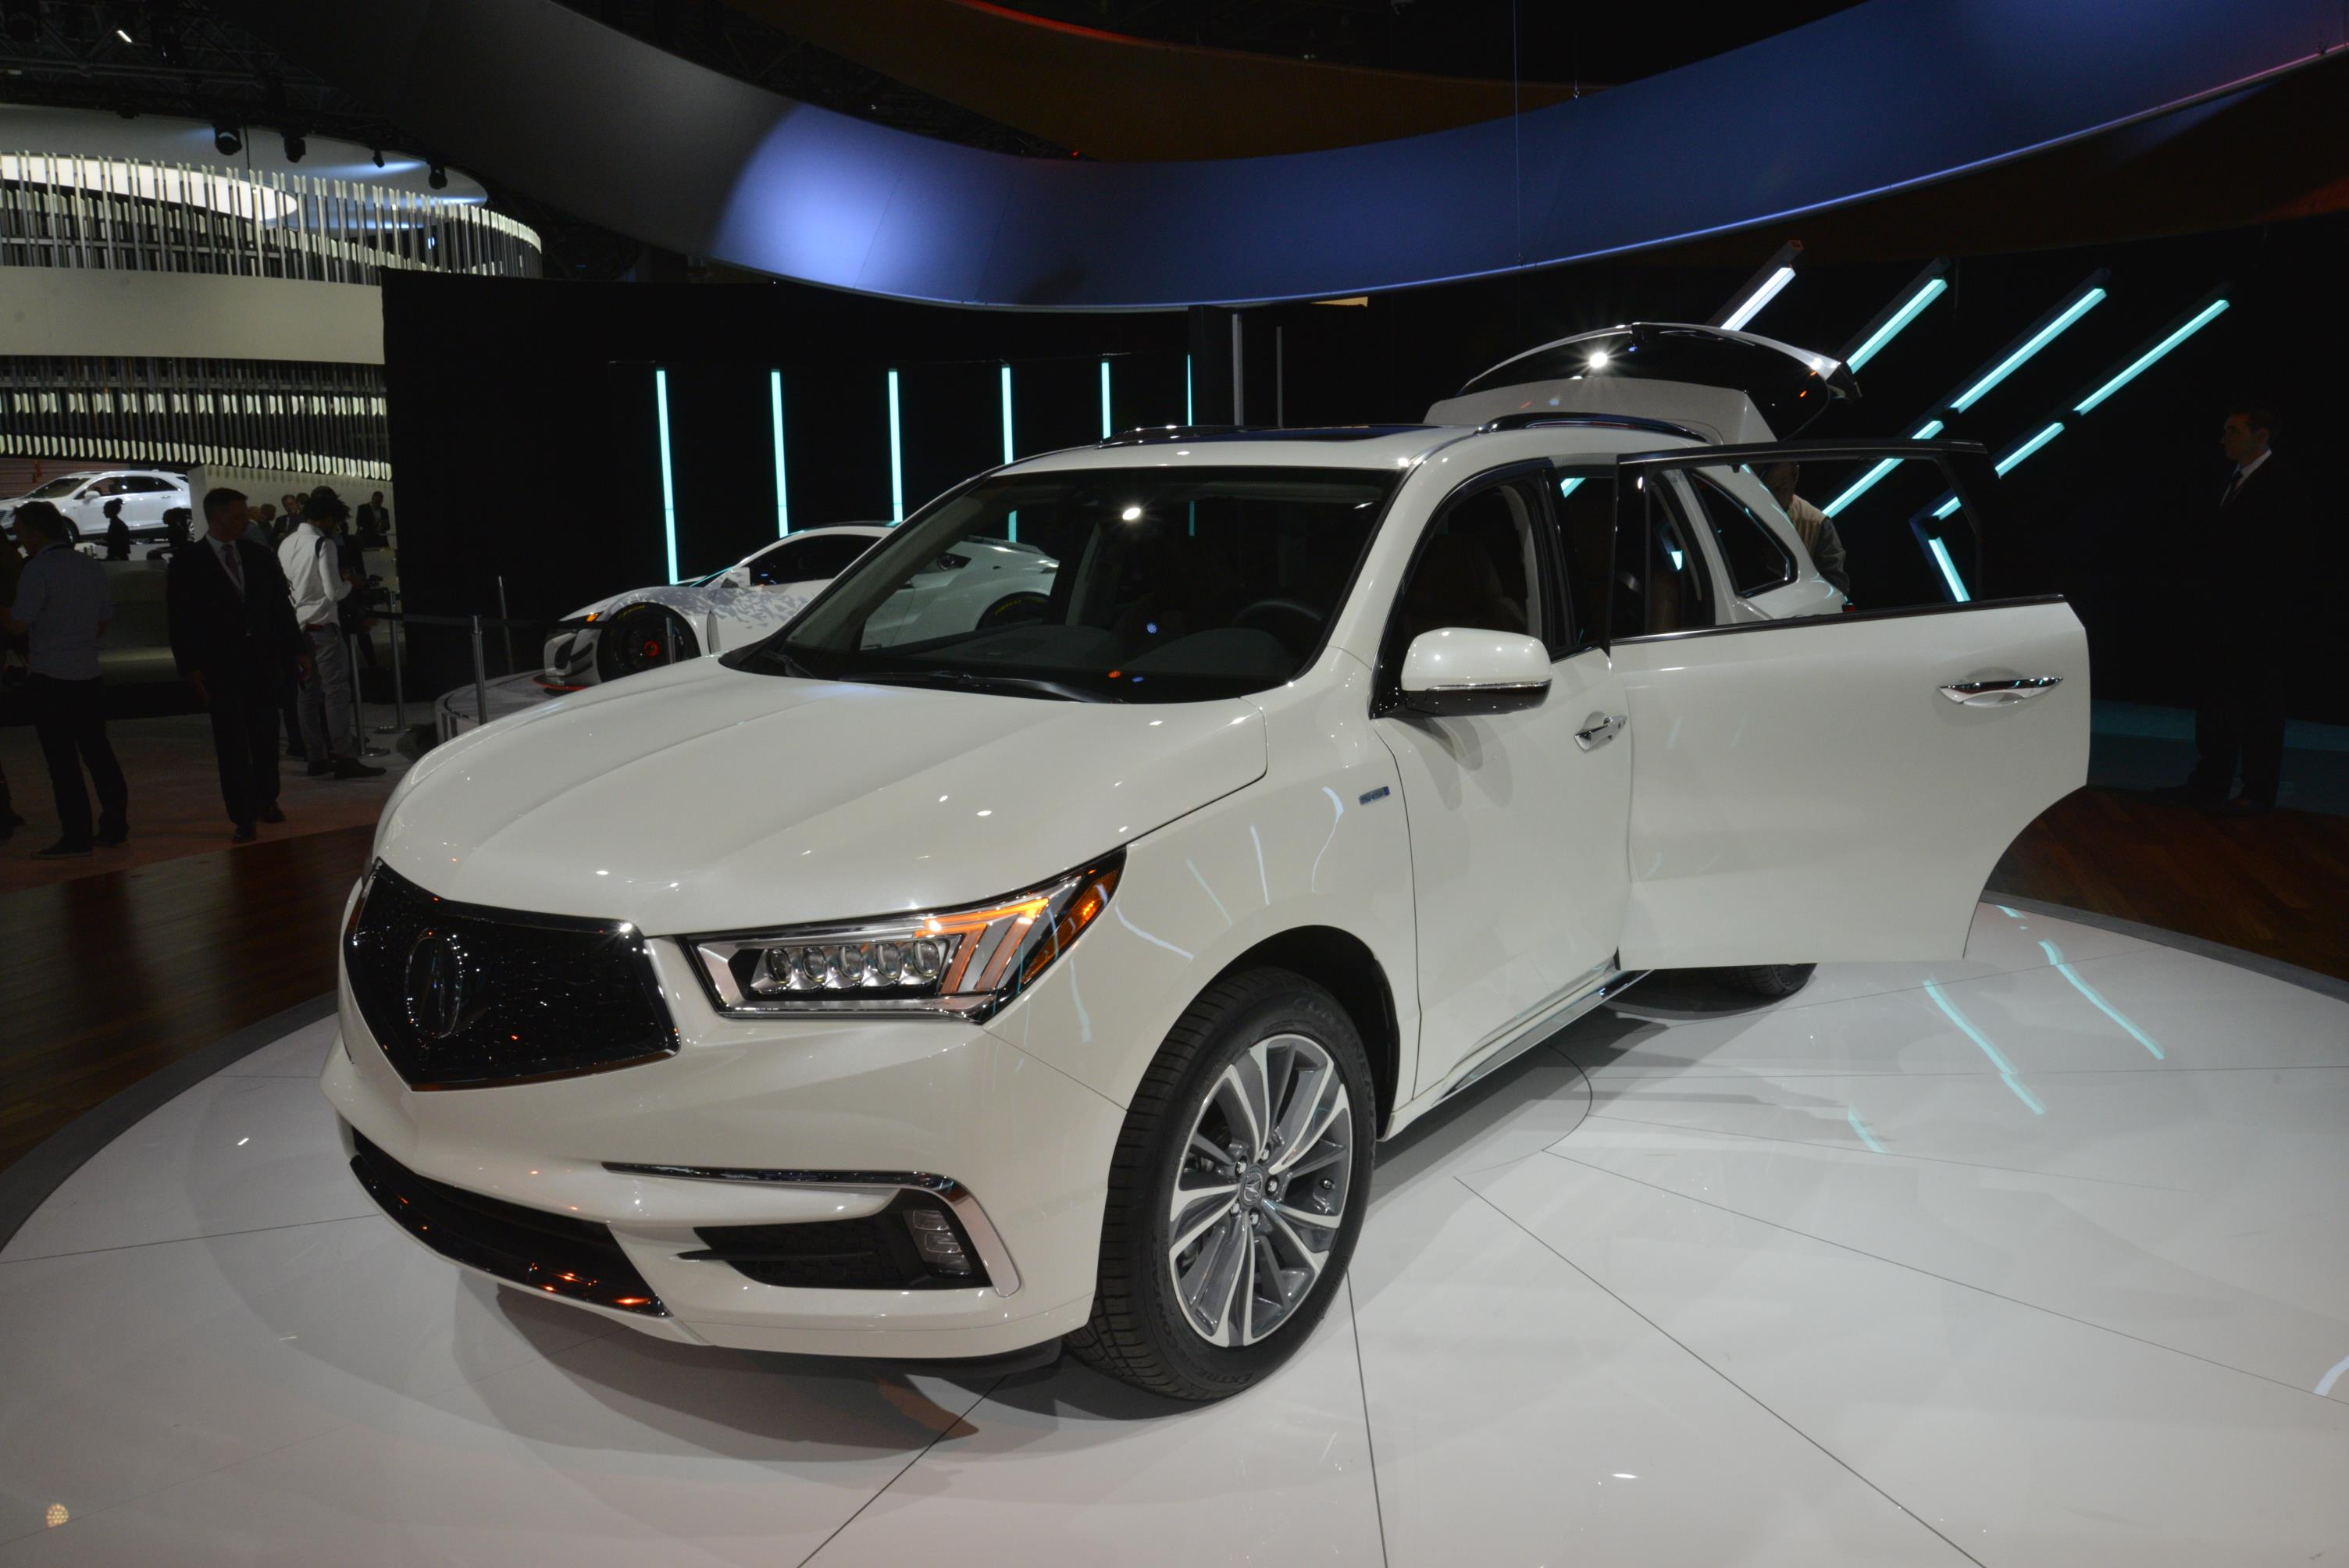 2017 acura mdx breaks the norm with 3 motor sport hybrid model autoevolution. Black Bedroom Furniture Sets. Home Design Ideas